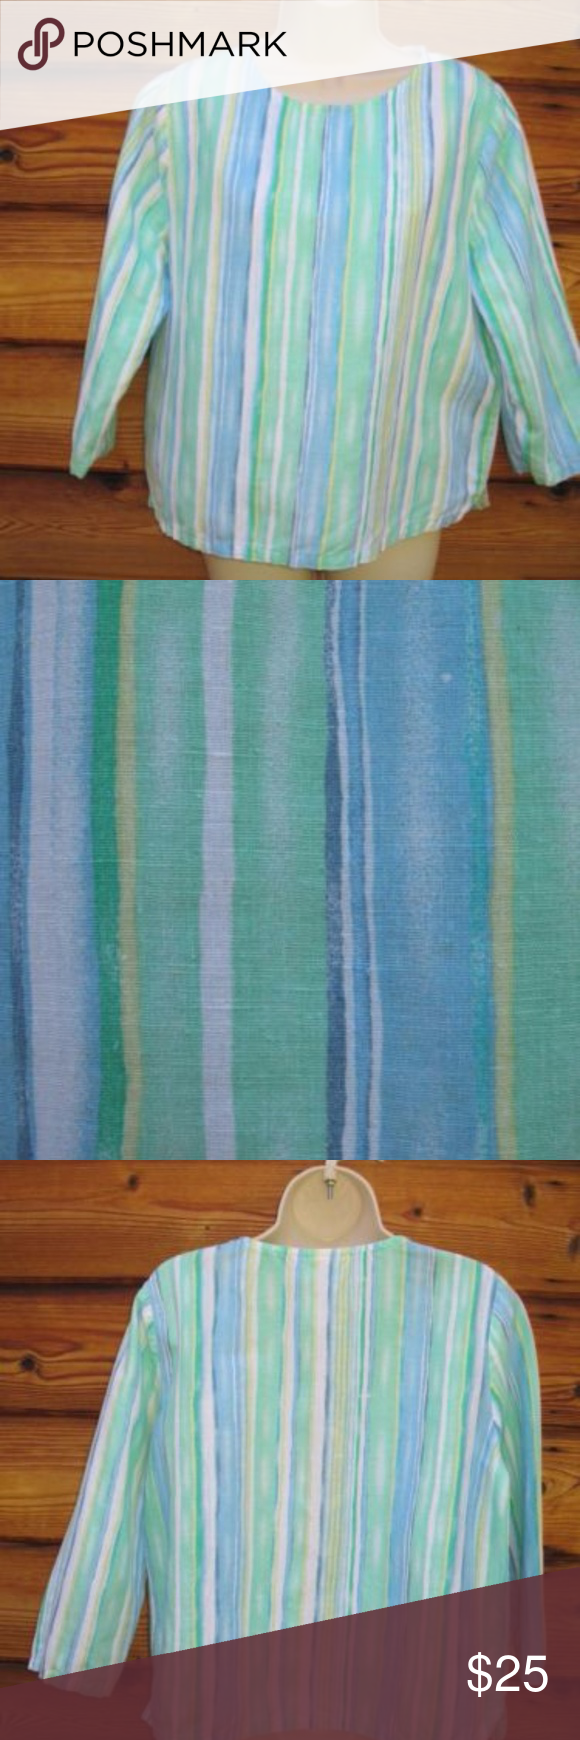 """FIRM Hot Cotton by Marc Ware Linen Cotton Top Hot Cotton by Marc Ware Linen Cotton Blend Striped 3/4 Sleeve Top, Size M  *Very good condition.  Details: Hot Cotton Size: M Color: Green Blue/Multi 55% Linen/45% Cotton Machine Wash Made in the USA  Measurements: Length: 23"""" Bust: 43"""" Waist: 42"""" Hot Cotton Tops Blouses"""